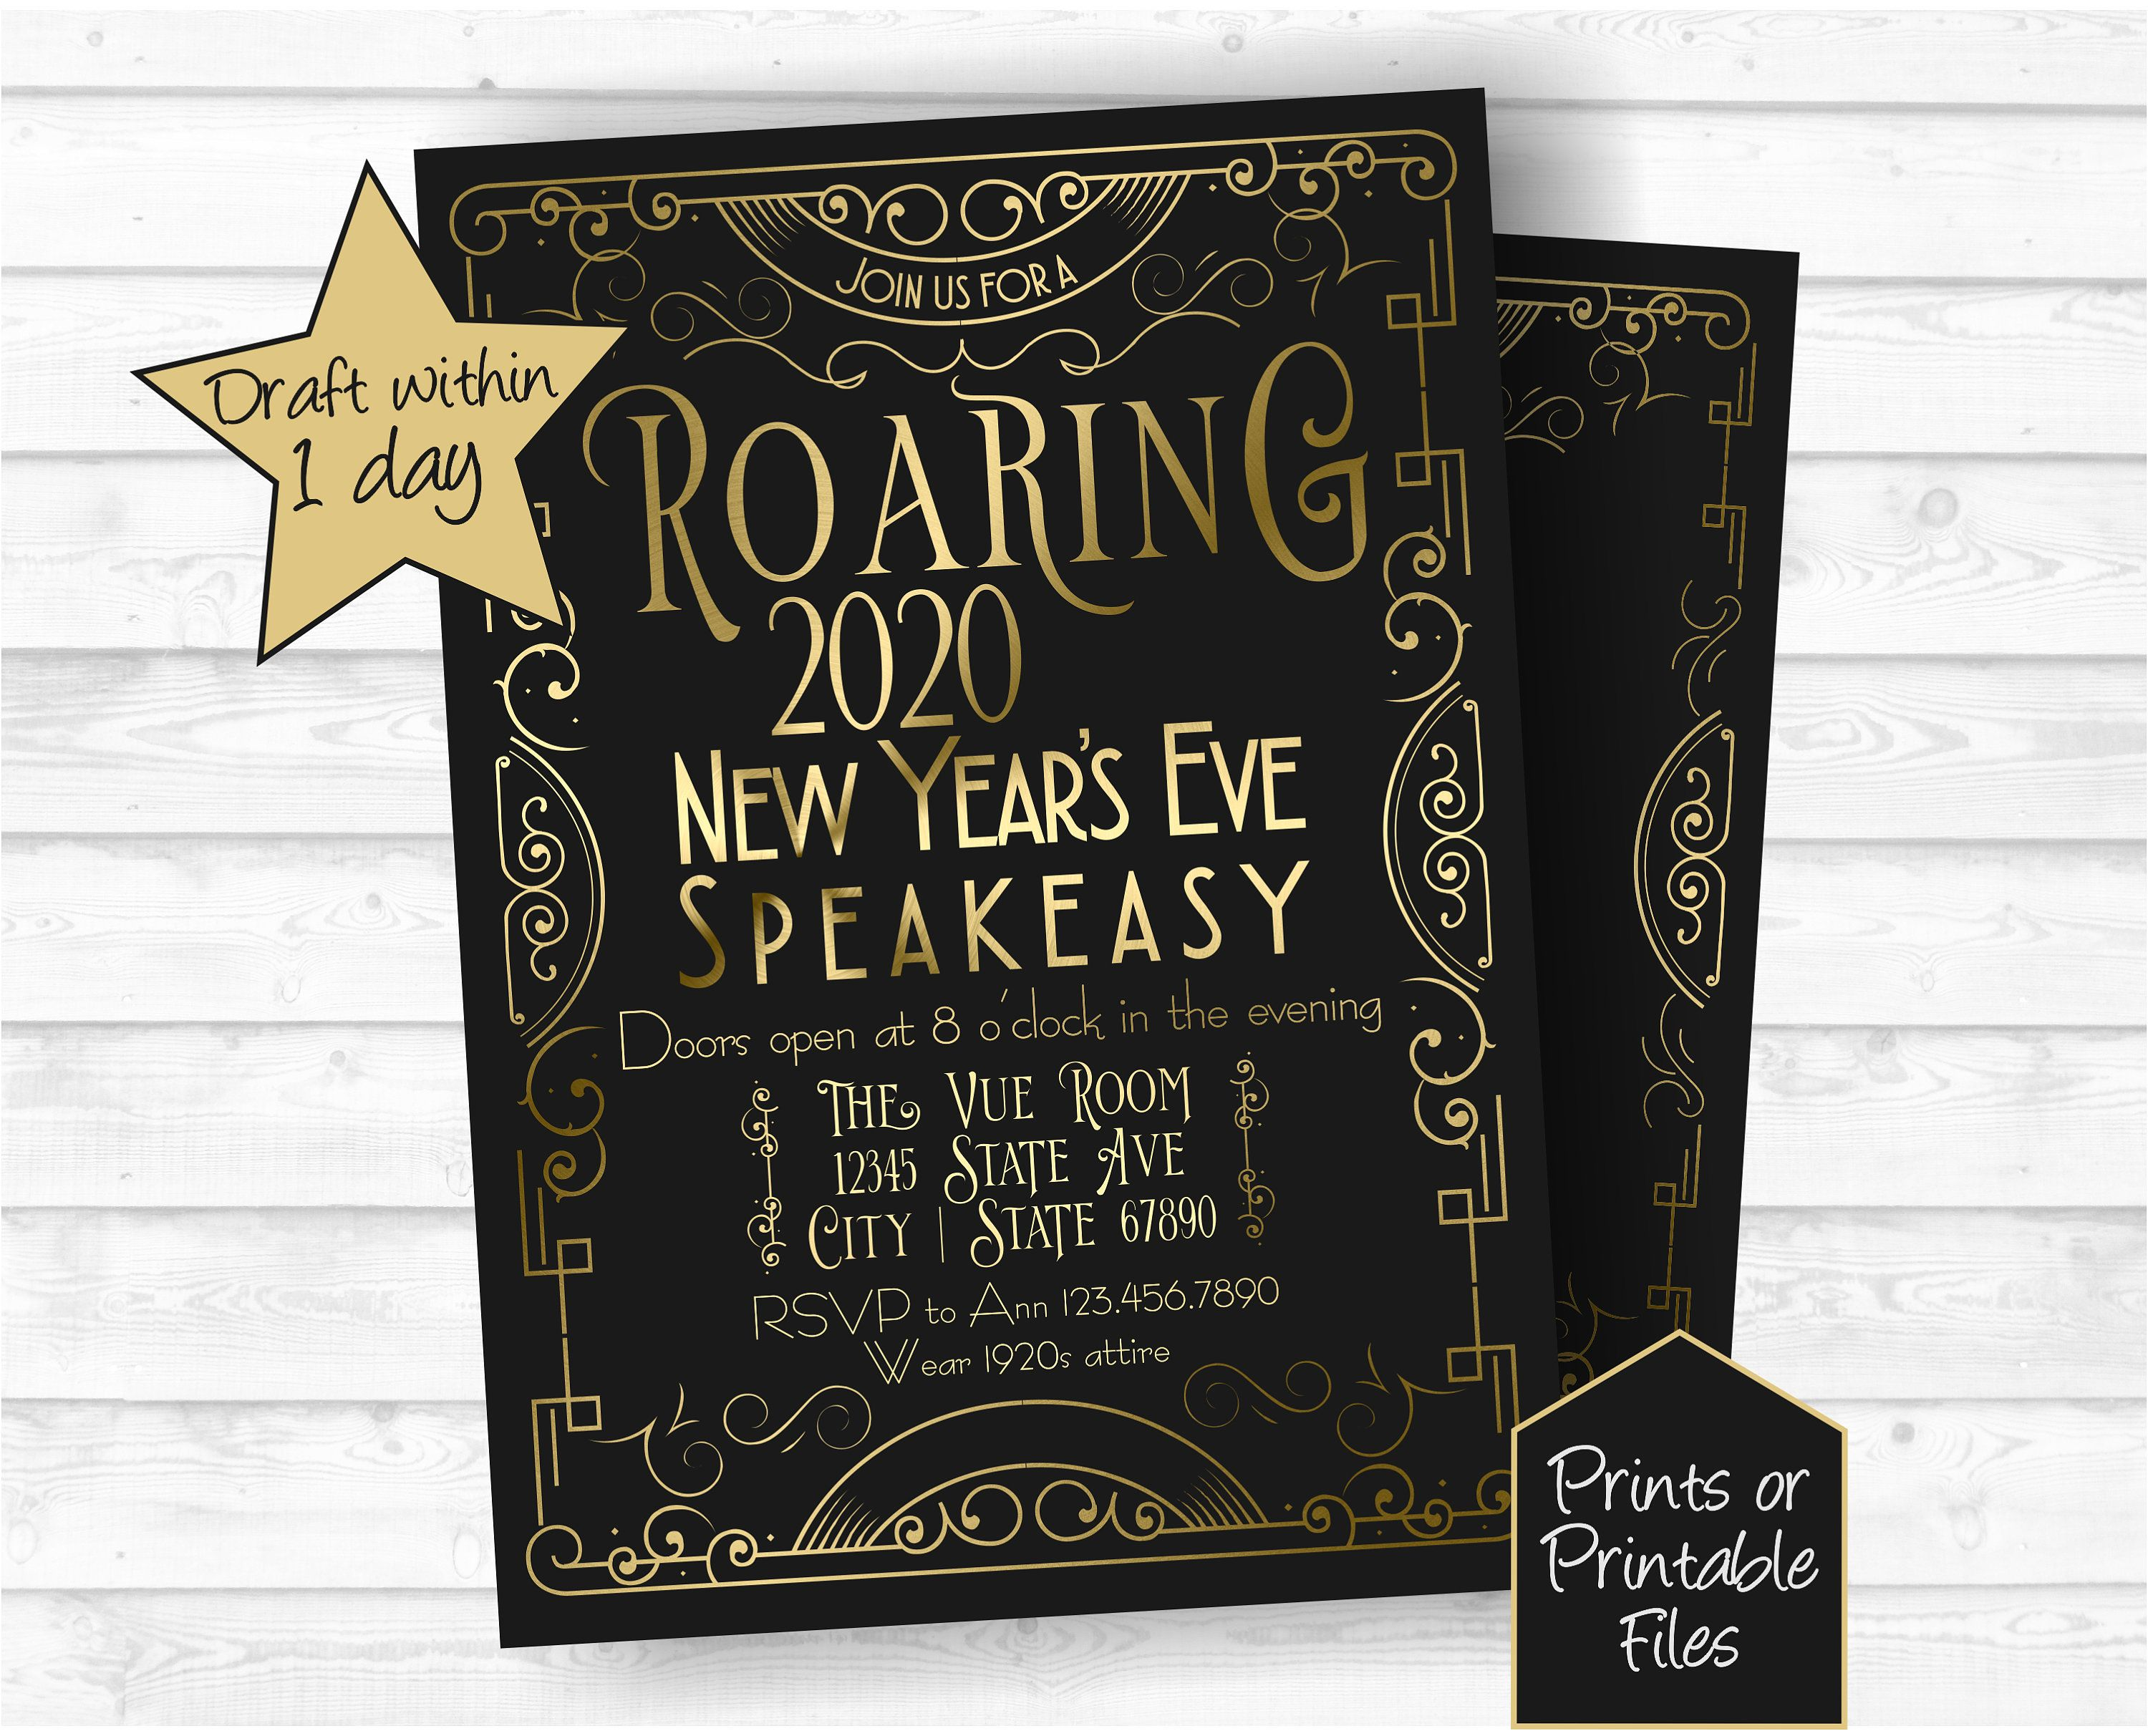 Roaring 20s New Year's Eve Party Invitations, Speakeasy